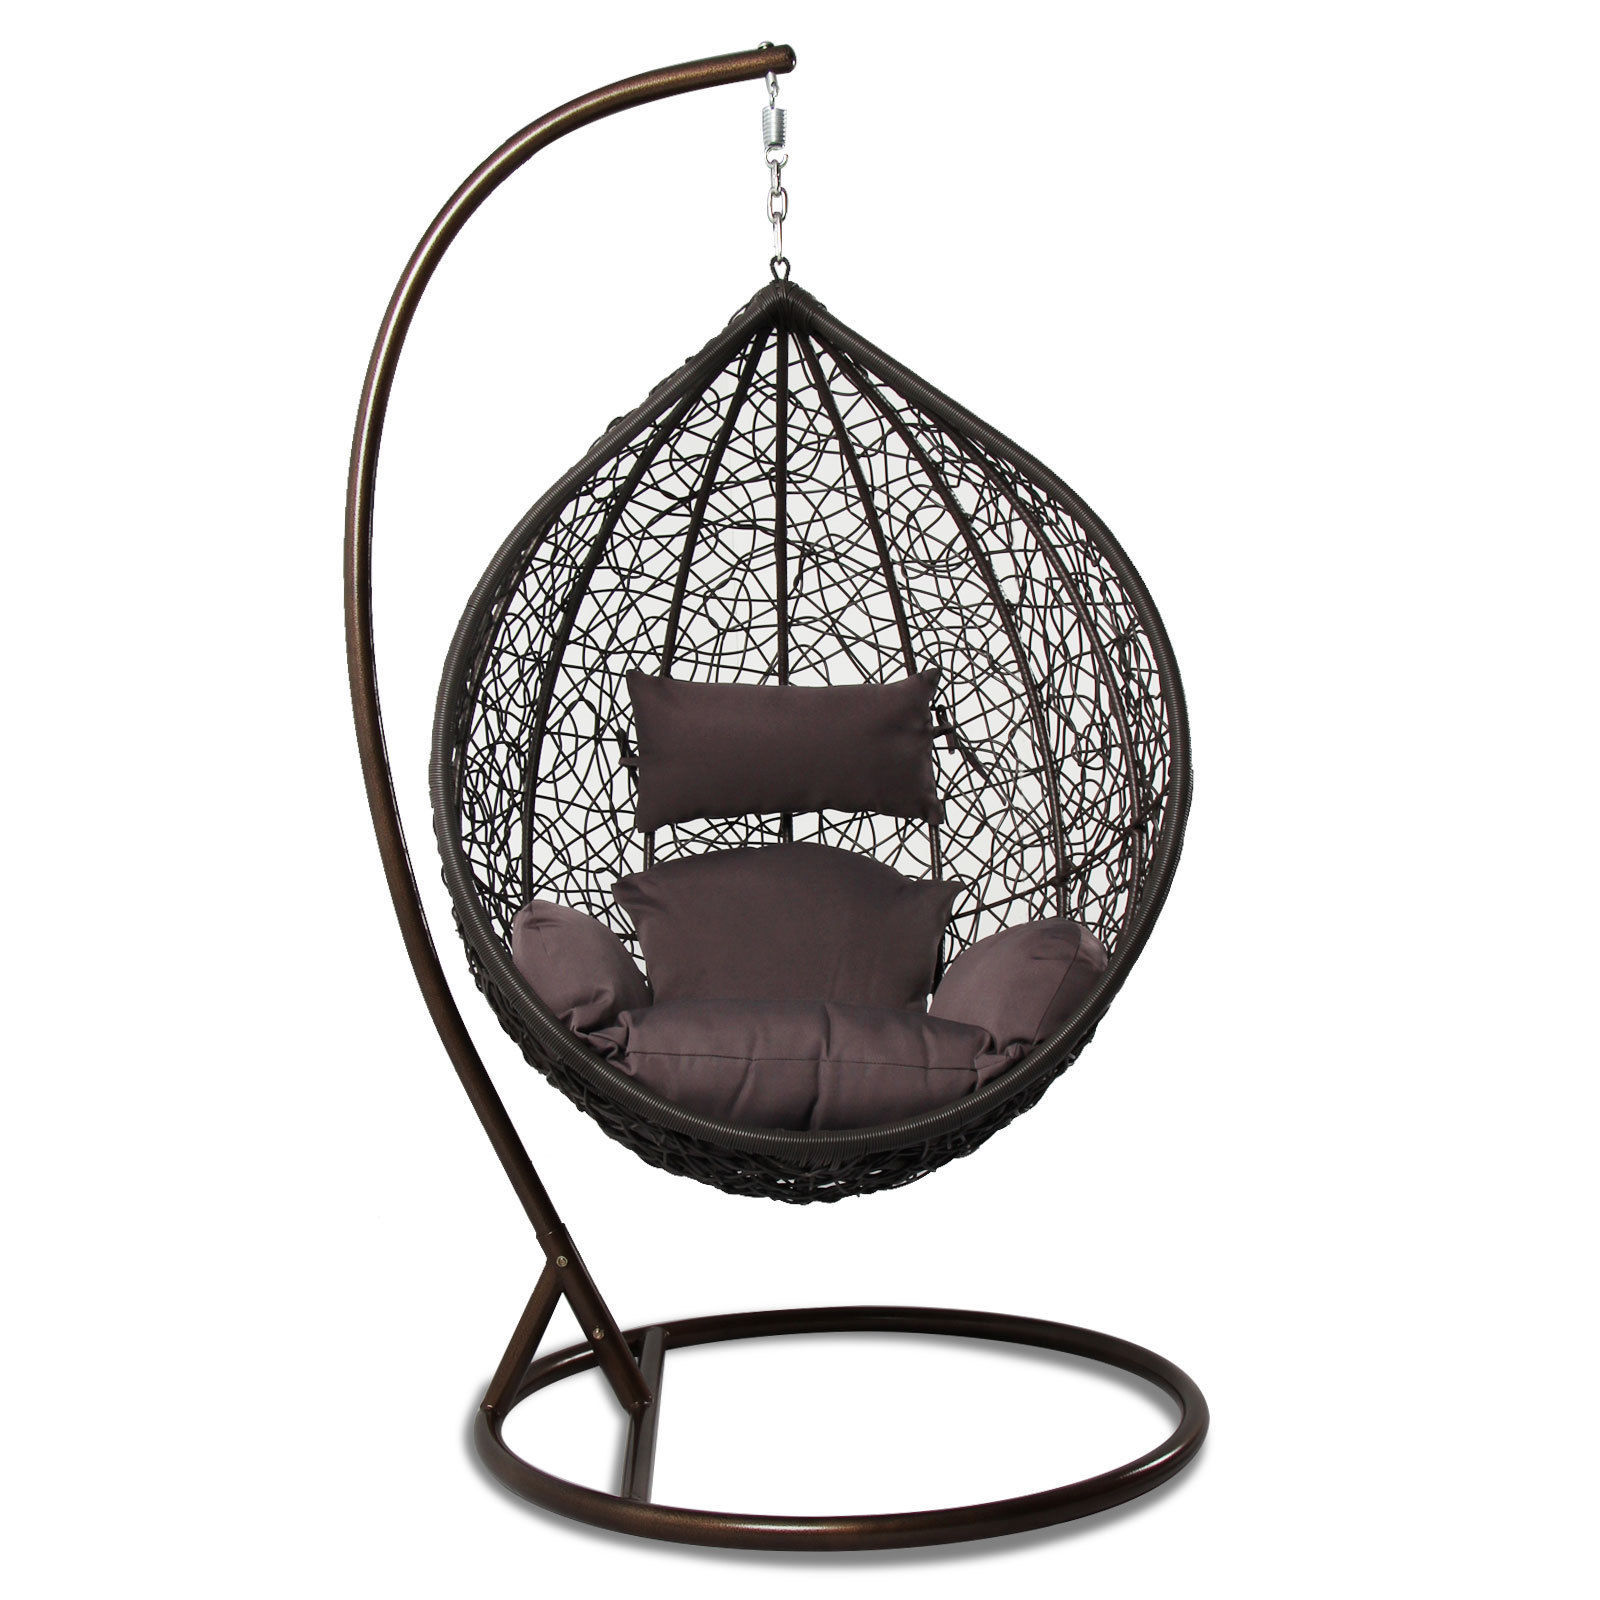 Outdoor Wicker Hanging Egg Chair Tear Drop Outdoor Hanging Hammock Wicker Swing Chair Egg